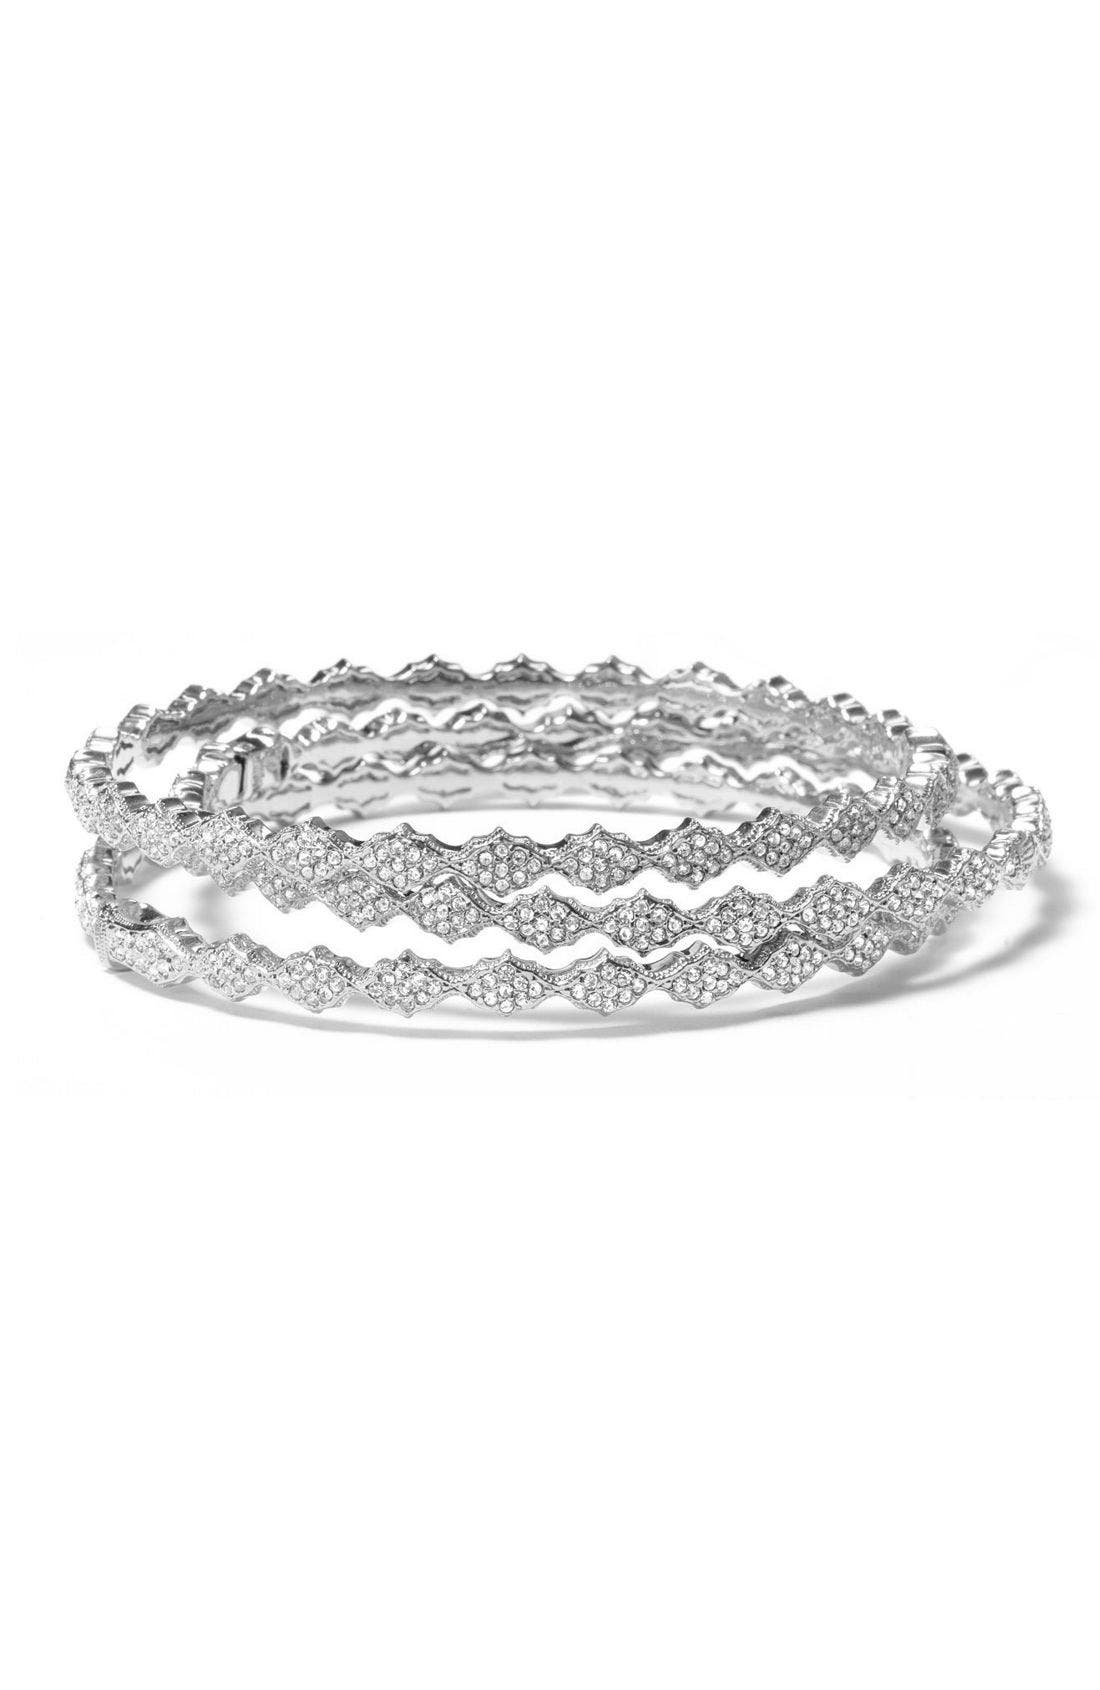 Main Image - Nadri Crystal Filigree Bangle Bracelet